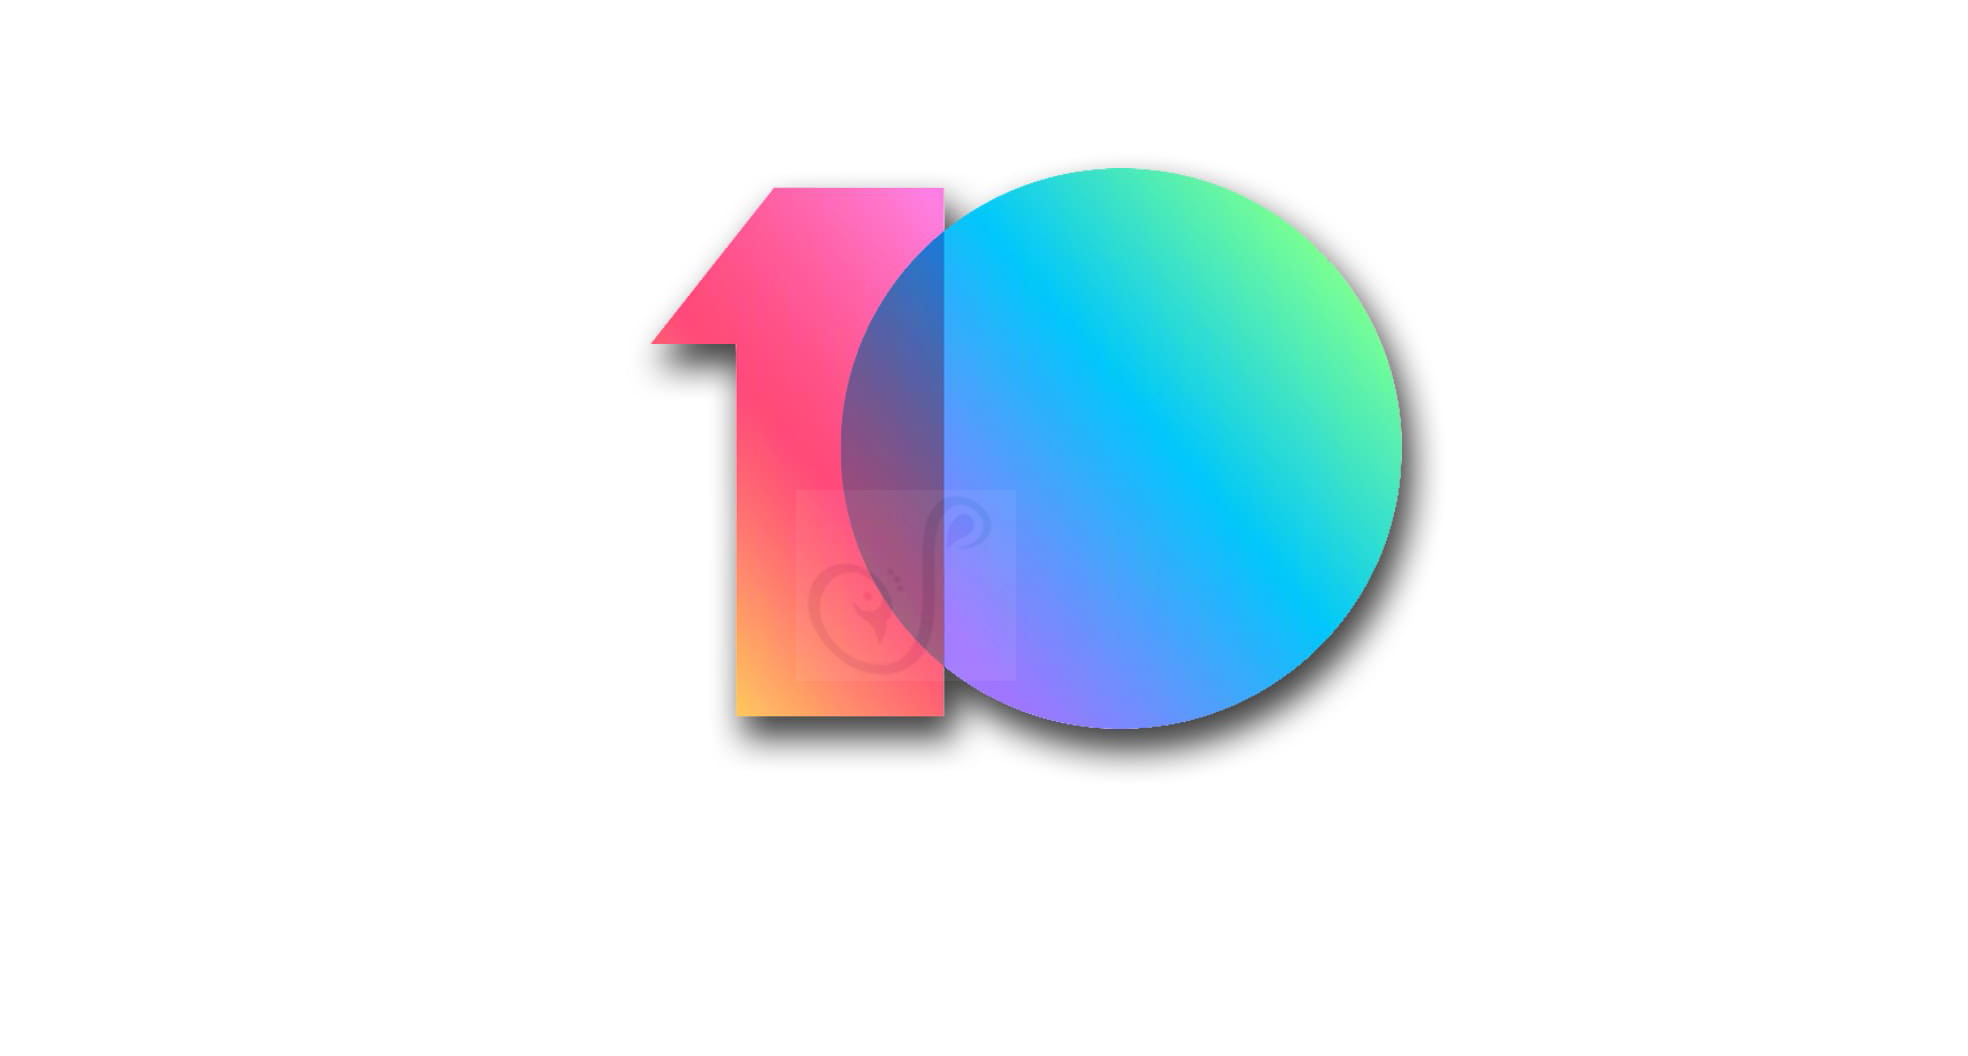 [How to Guide] Install MIUI 10 ROM on Xiaomi Devices (Global & China)